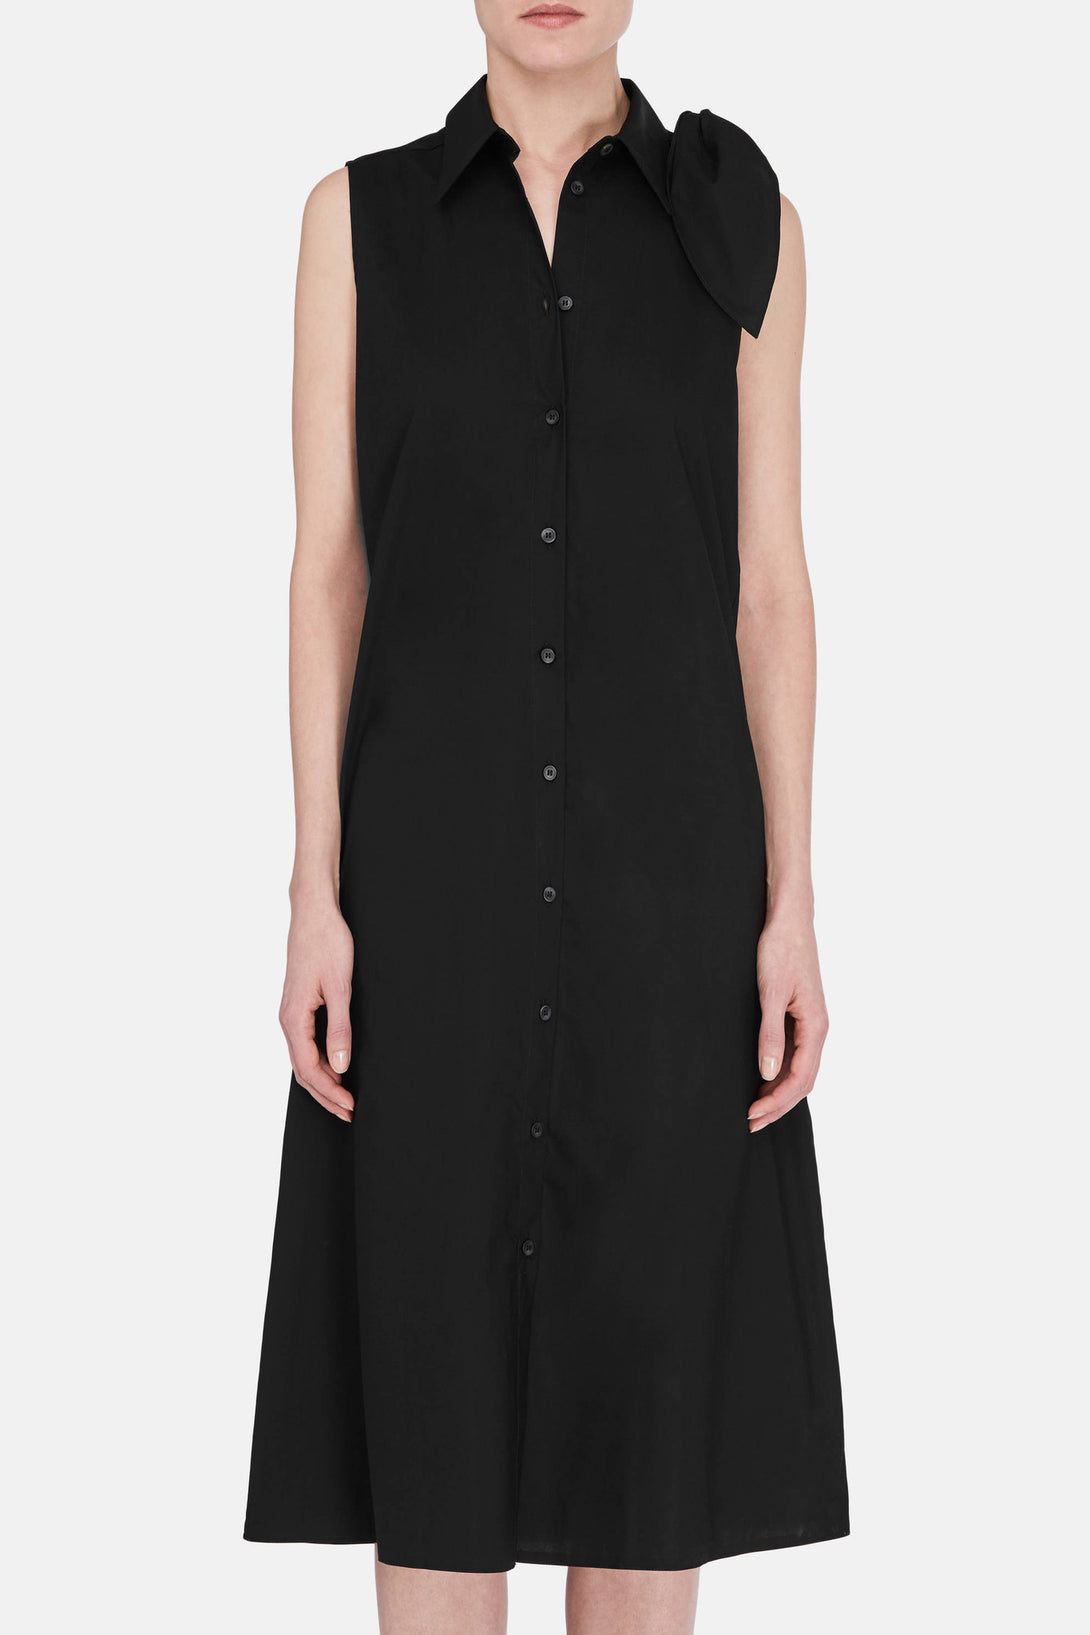 Shoulder Tie Dress - Black